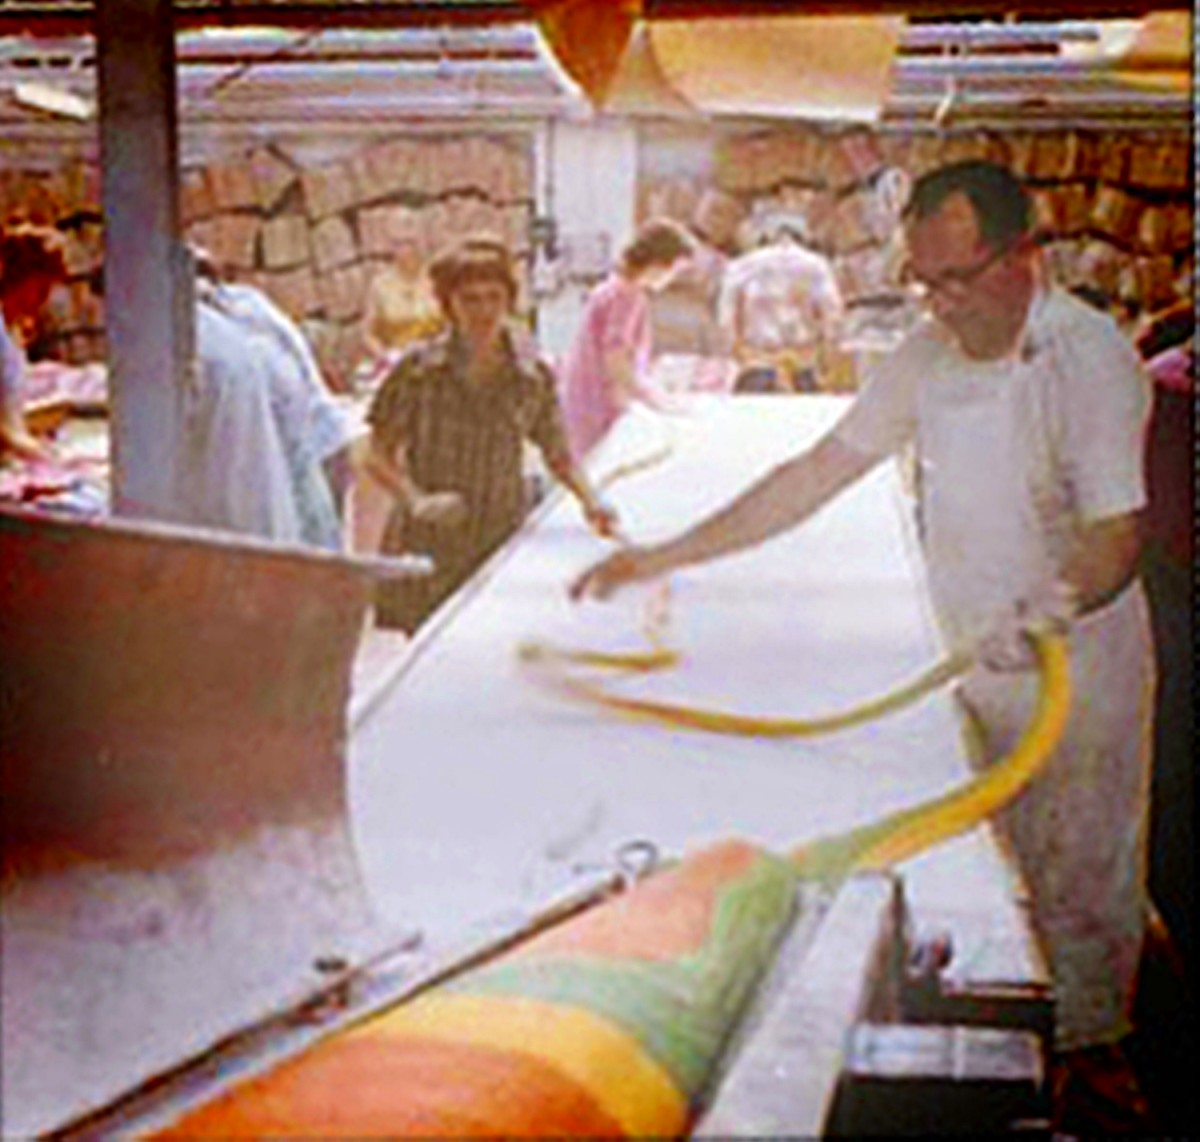 Making the sticks of rock at Ashton Candy Co, where my mum worked in the 1970s